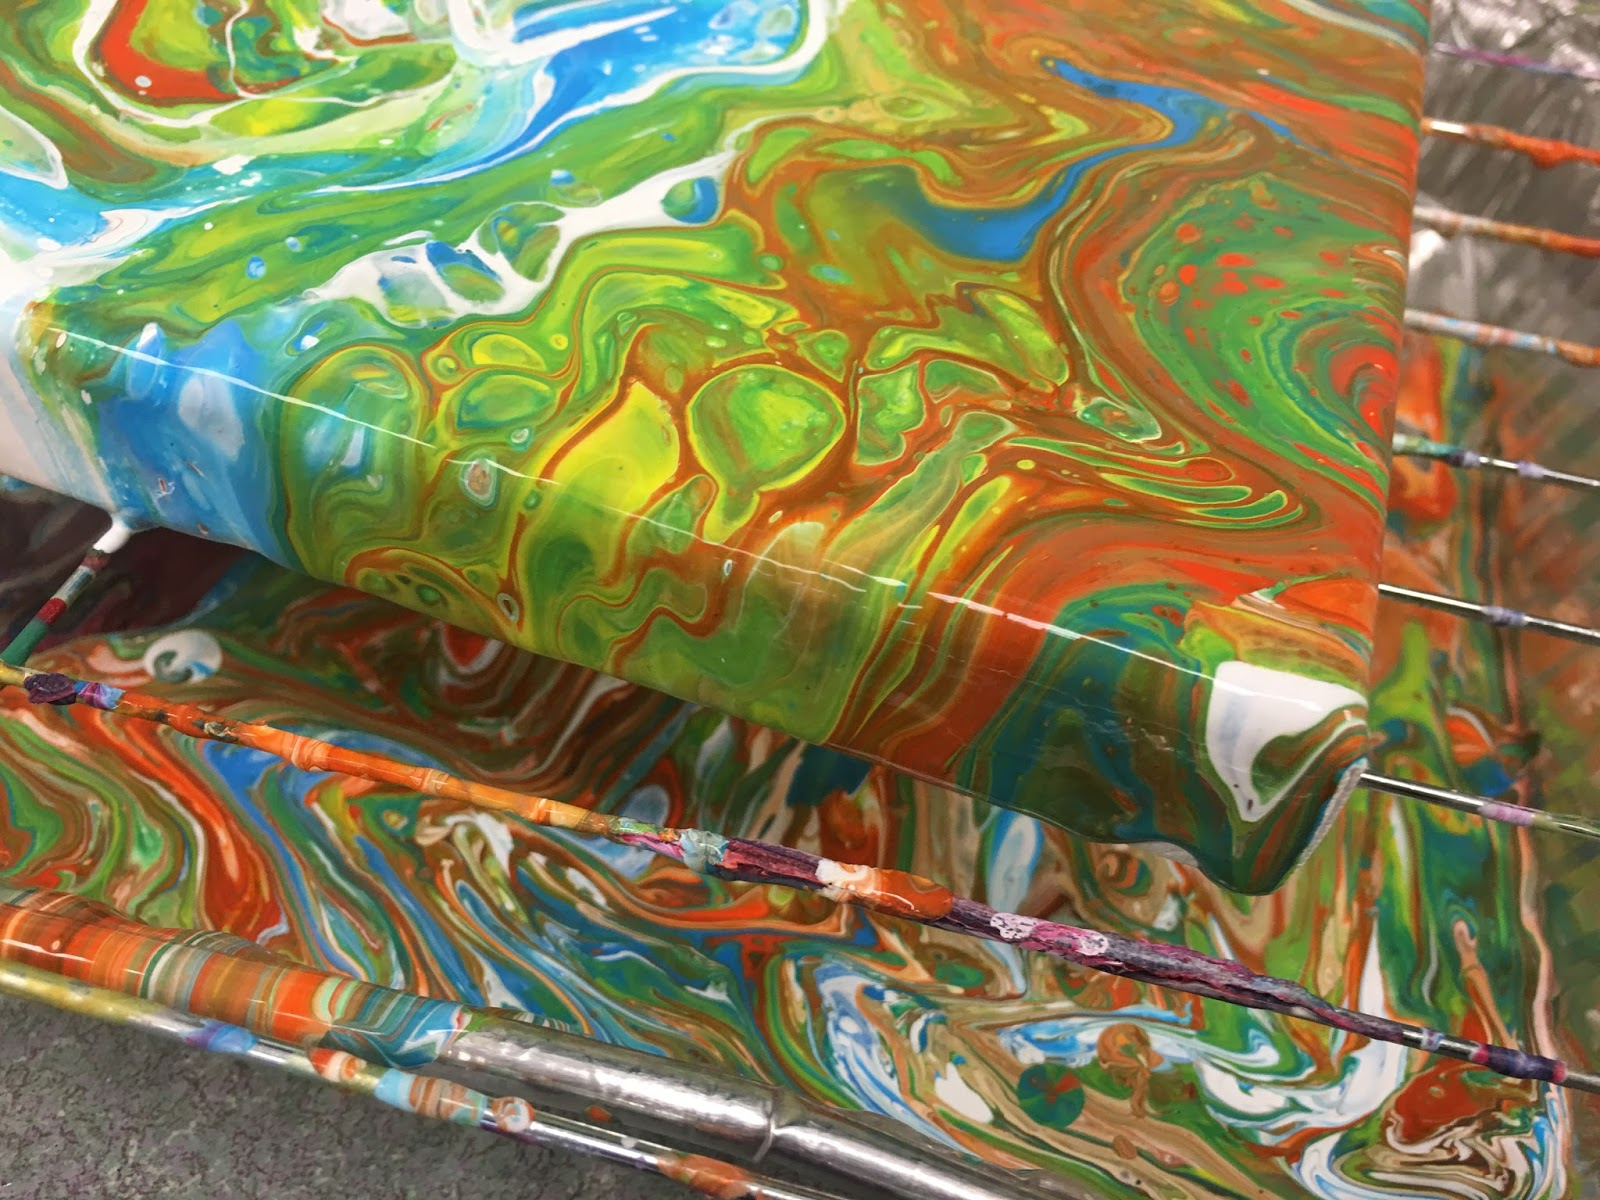 9a67daf4d03 Art Room Blog  Acrylic Pour Painting...